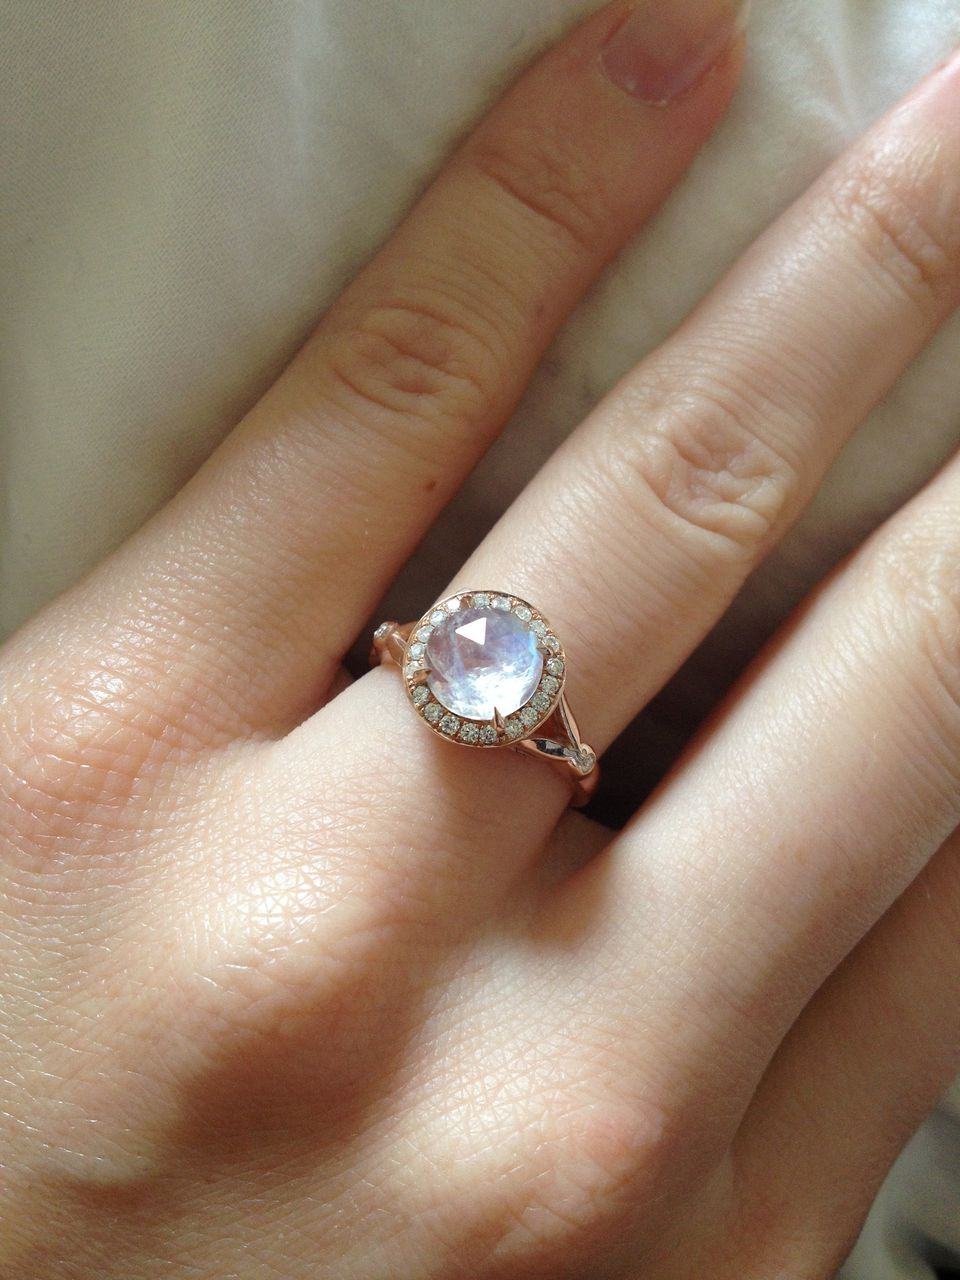 Moonstone Meaning and Facts: Moonstone Can Make an Engagement Ring Alternative